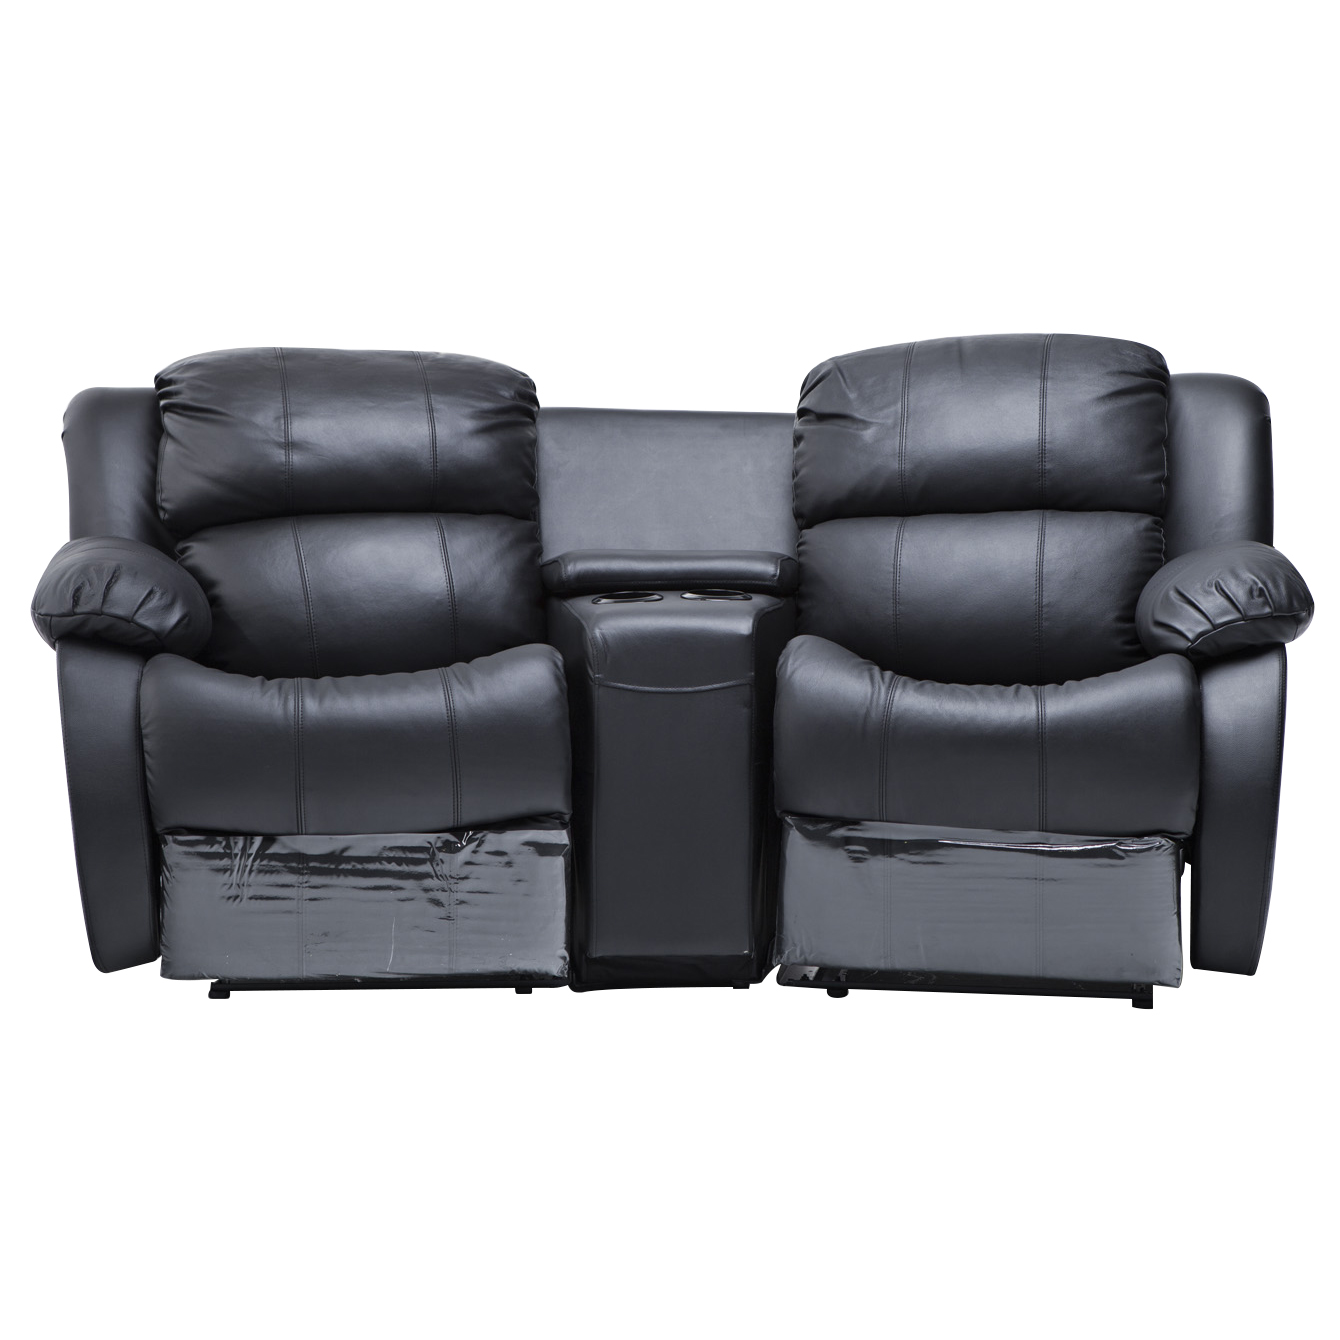 Best Leather Reclining Sofa Brands: Nikki Leather 2 Seater Home Theatre Recliner Sofa Lounge